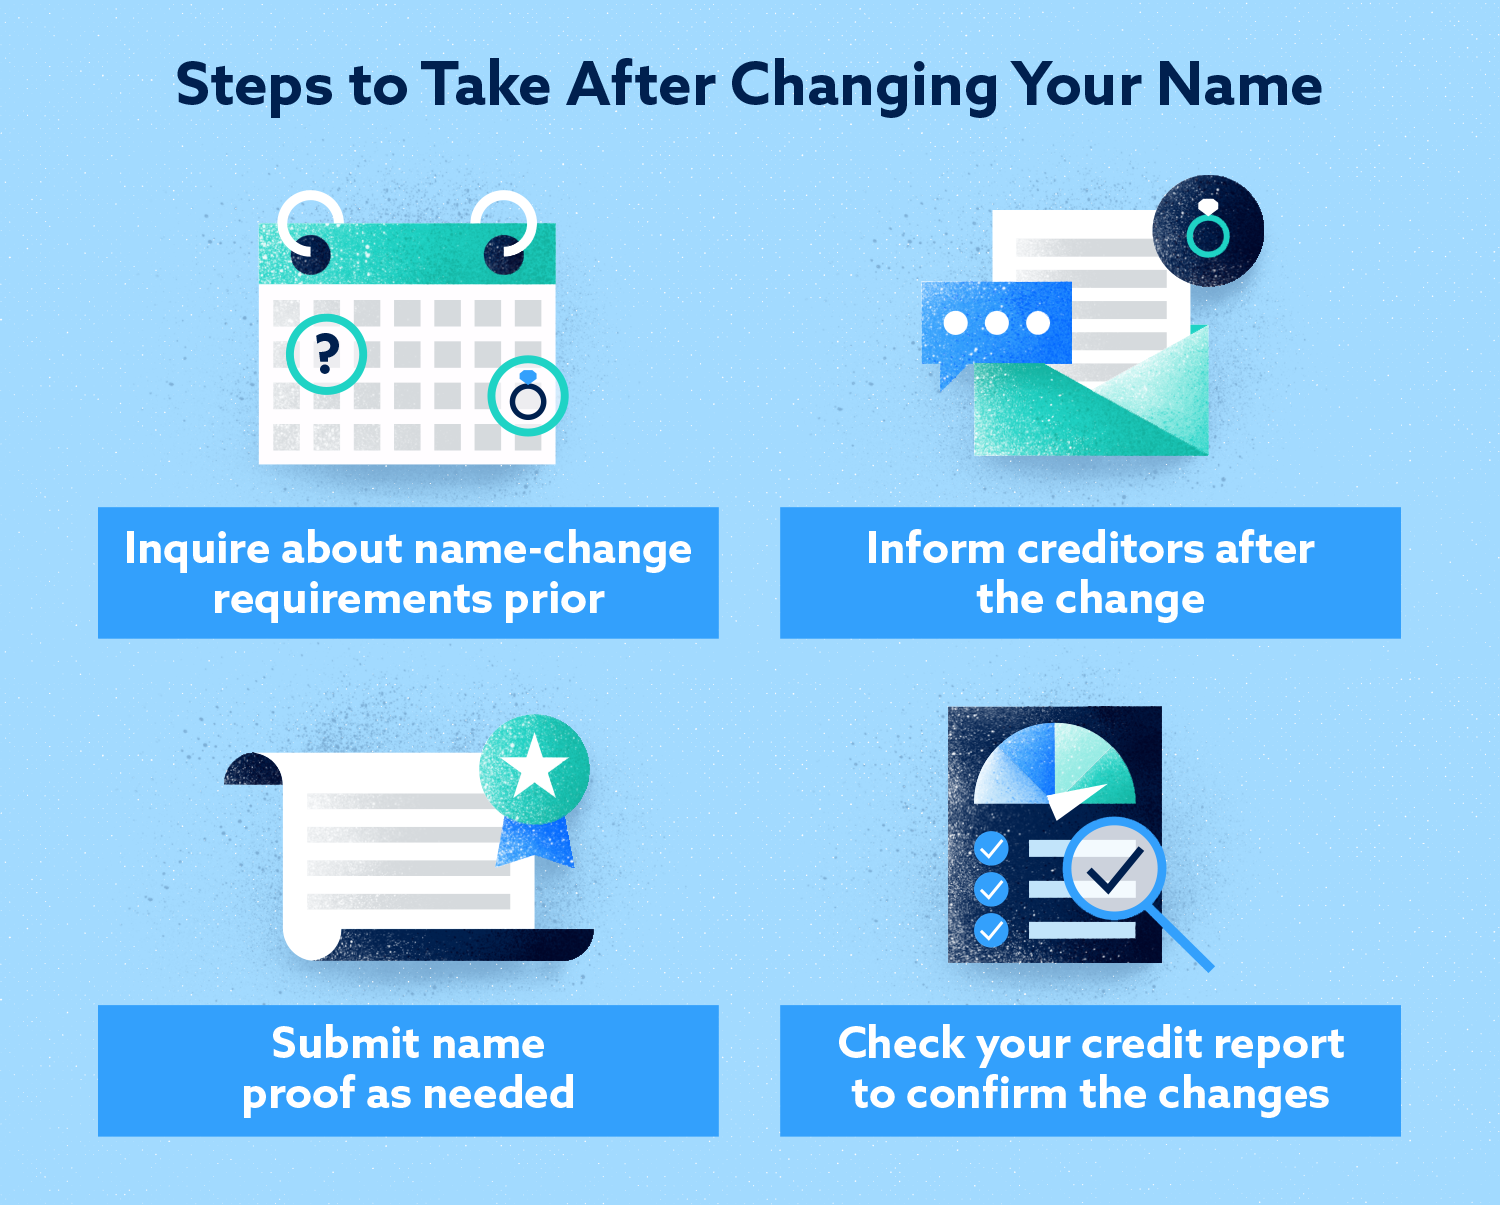 Steps to Take After Changing Your Name Image